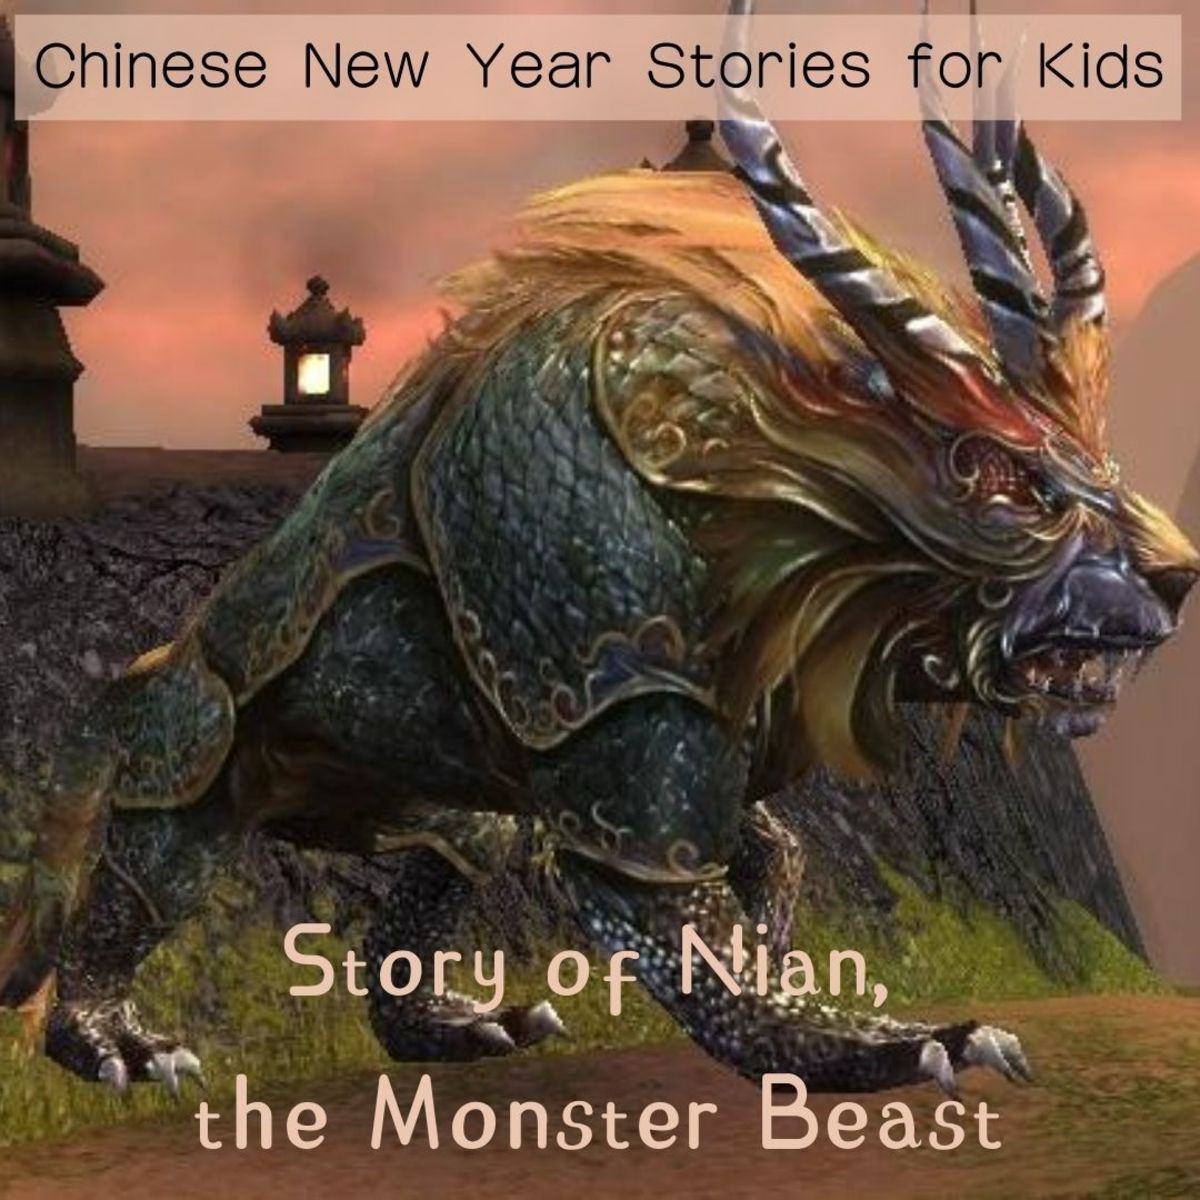 Story of Nian: legend of Chinese New Year